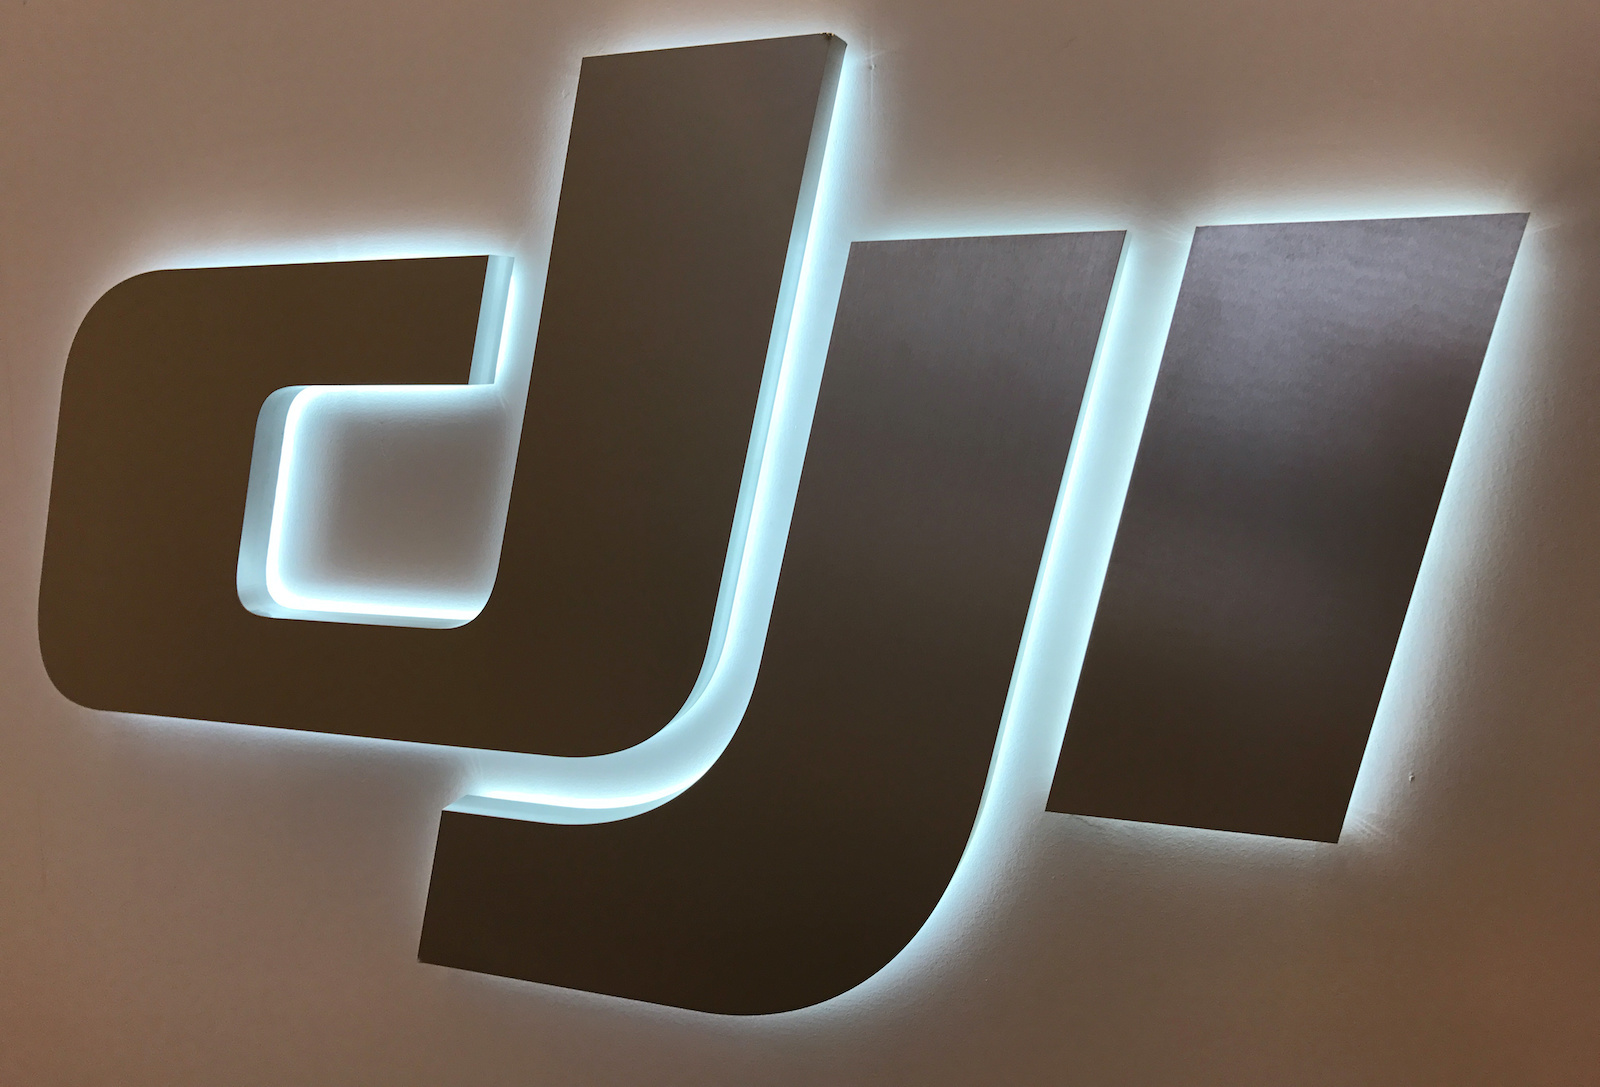 The logo of Chinese drone maker DJI is seen at the company's office in New York, New York, U.S., August 11, 2017. Photo taken August 11, 2017.  REUTERS/Alwyn Scott - RC193498F900